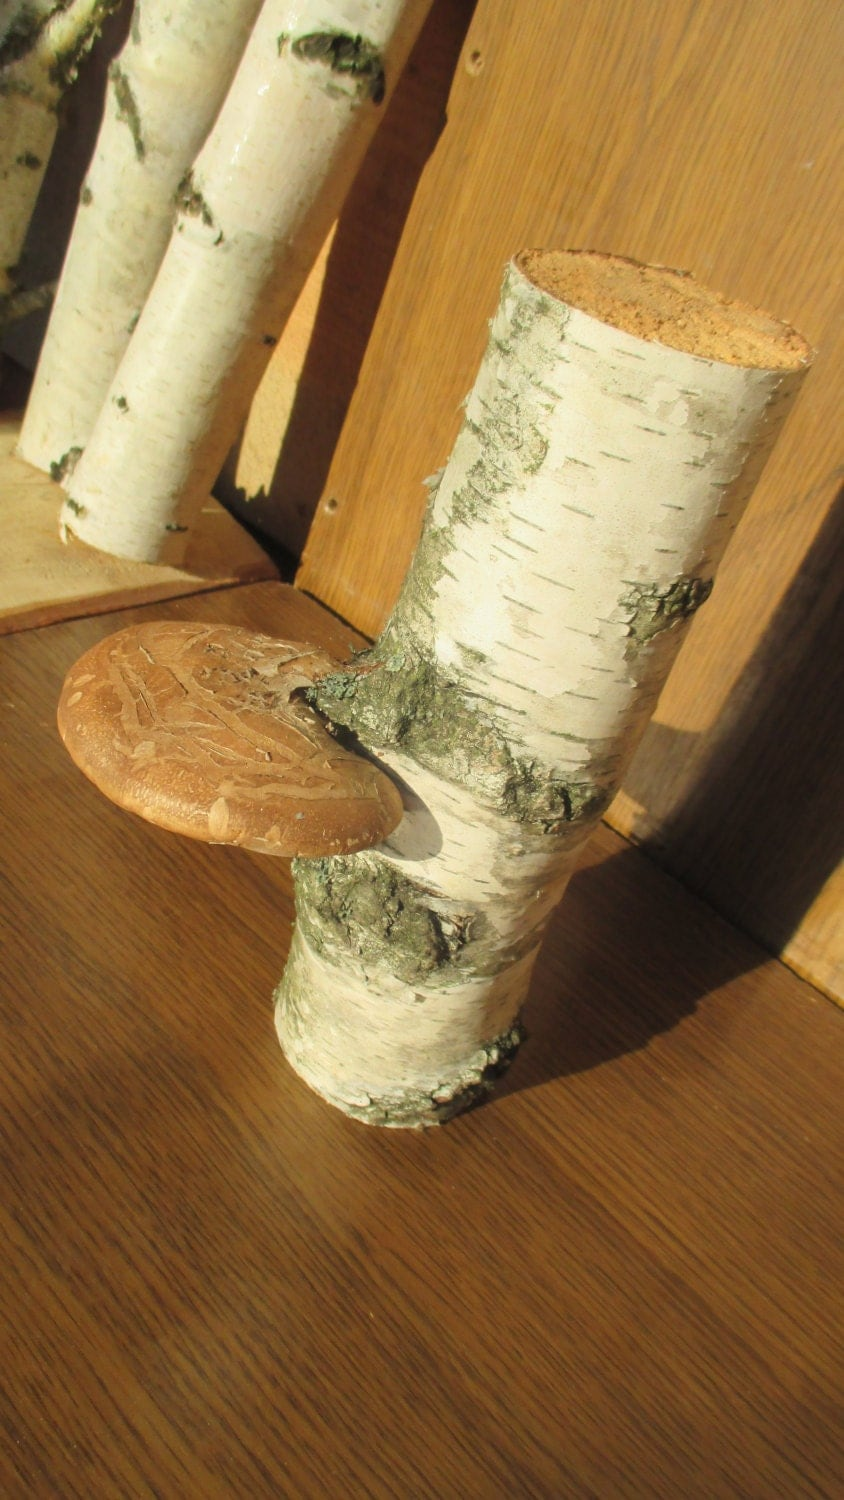 Sale 25 Decorative Birch Tree Log With Fungus Tree Fungi Rustic Home Decor Craft Supply